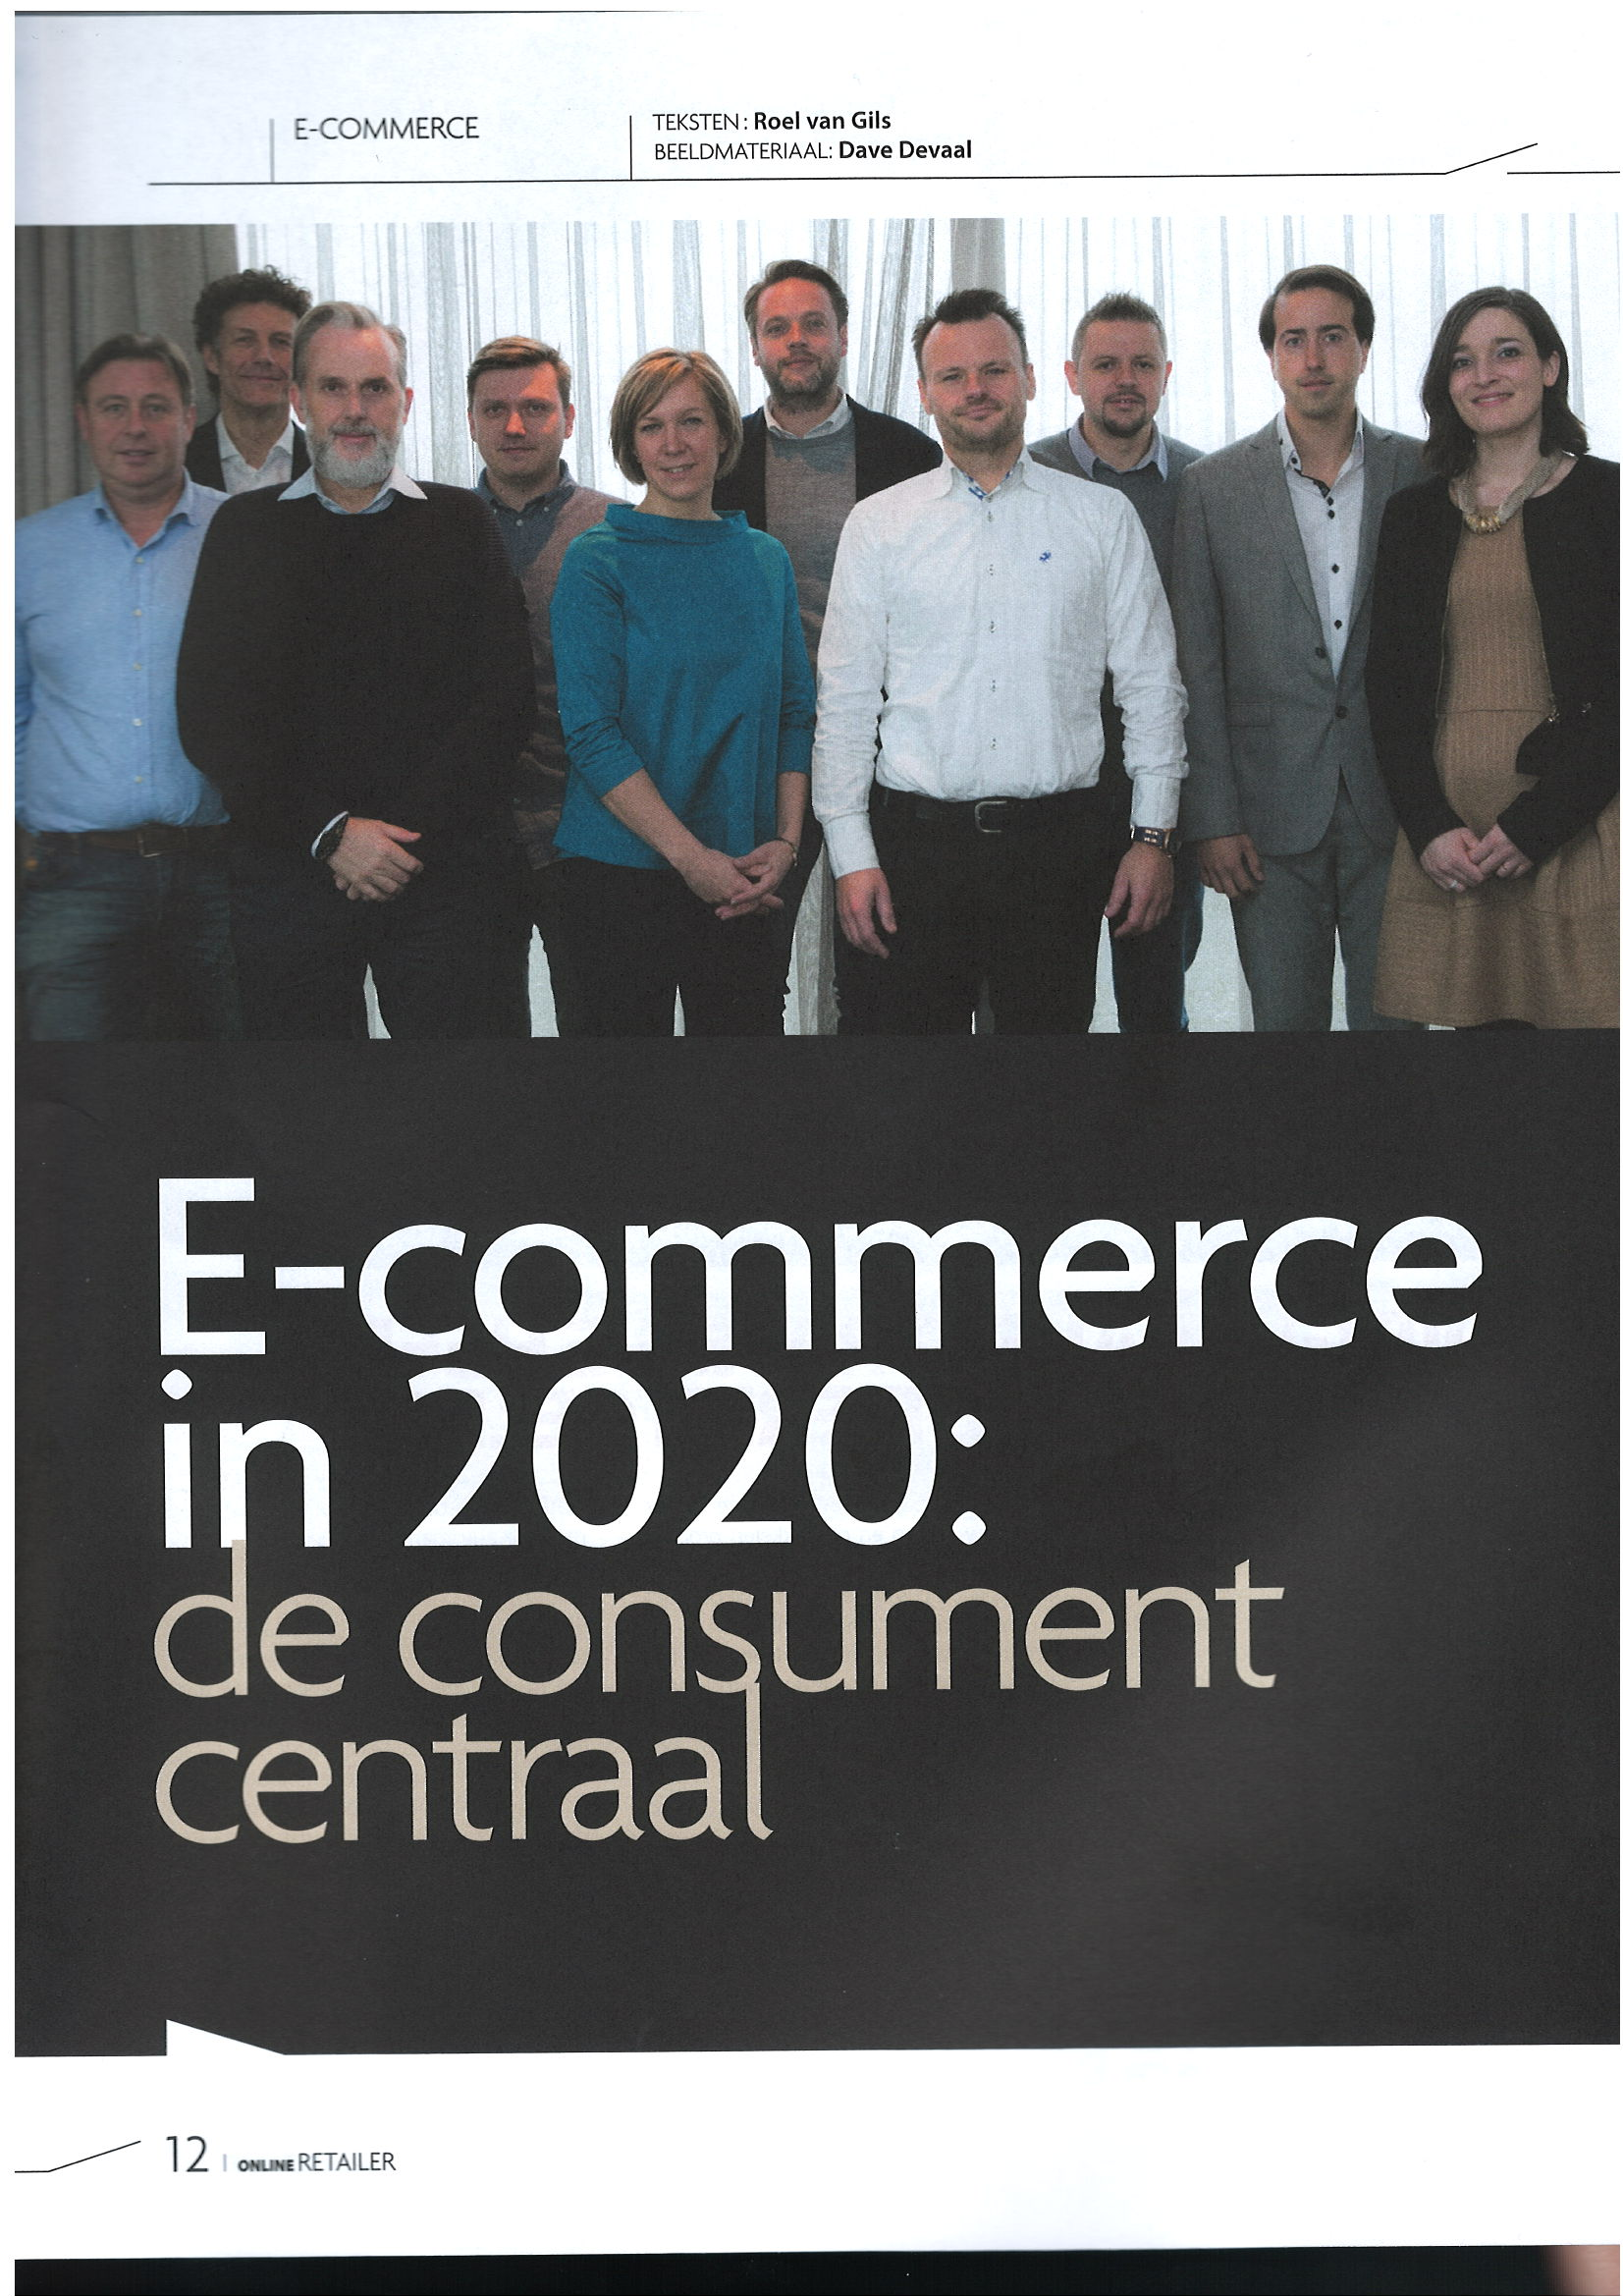 E-commerce in 2020: de consumente centraal p1